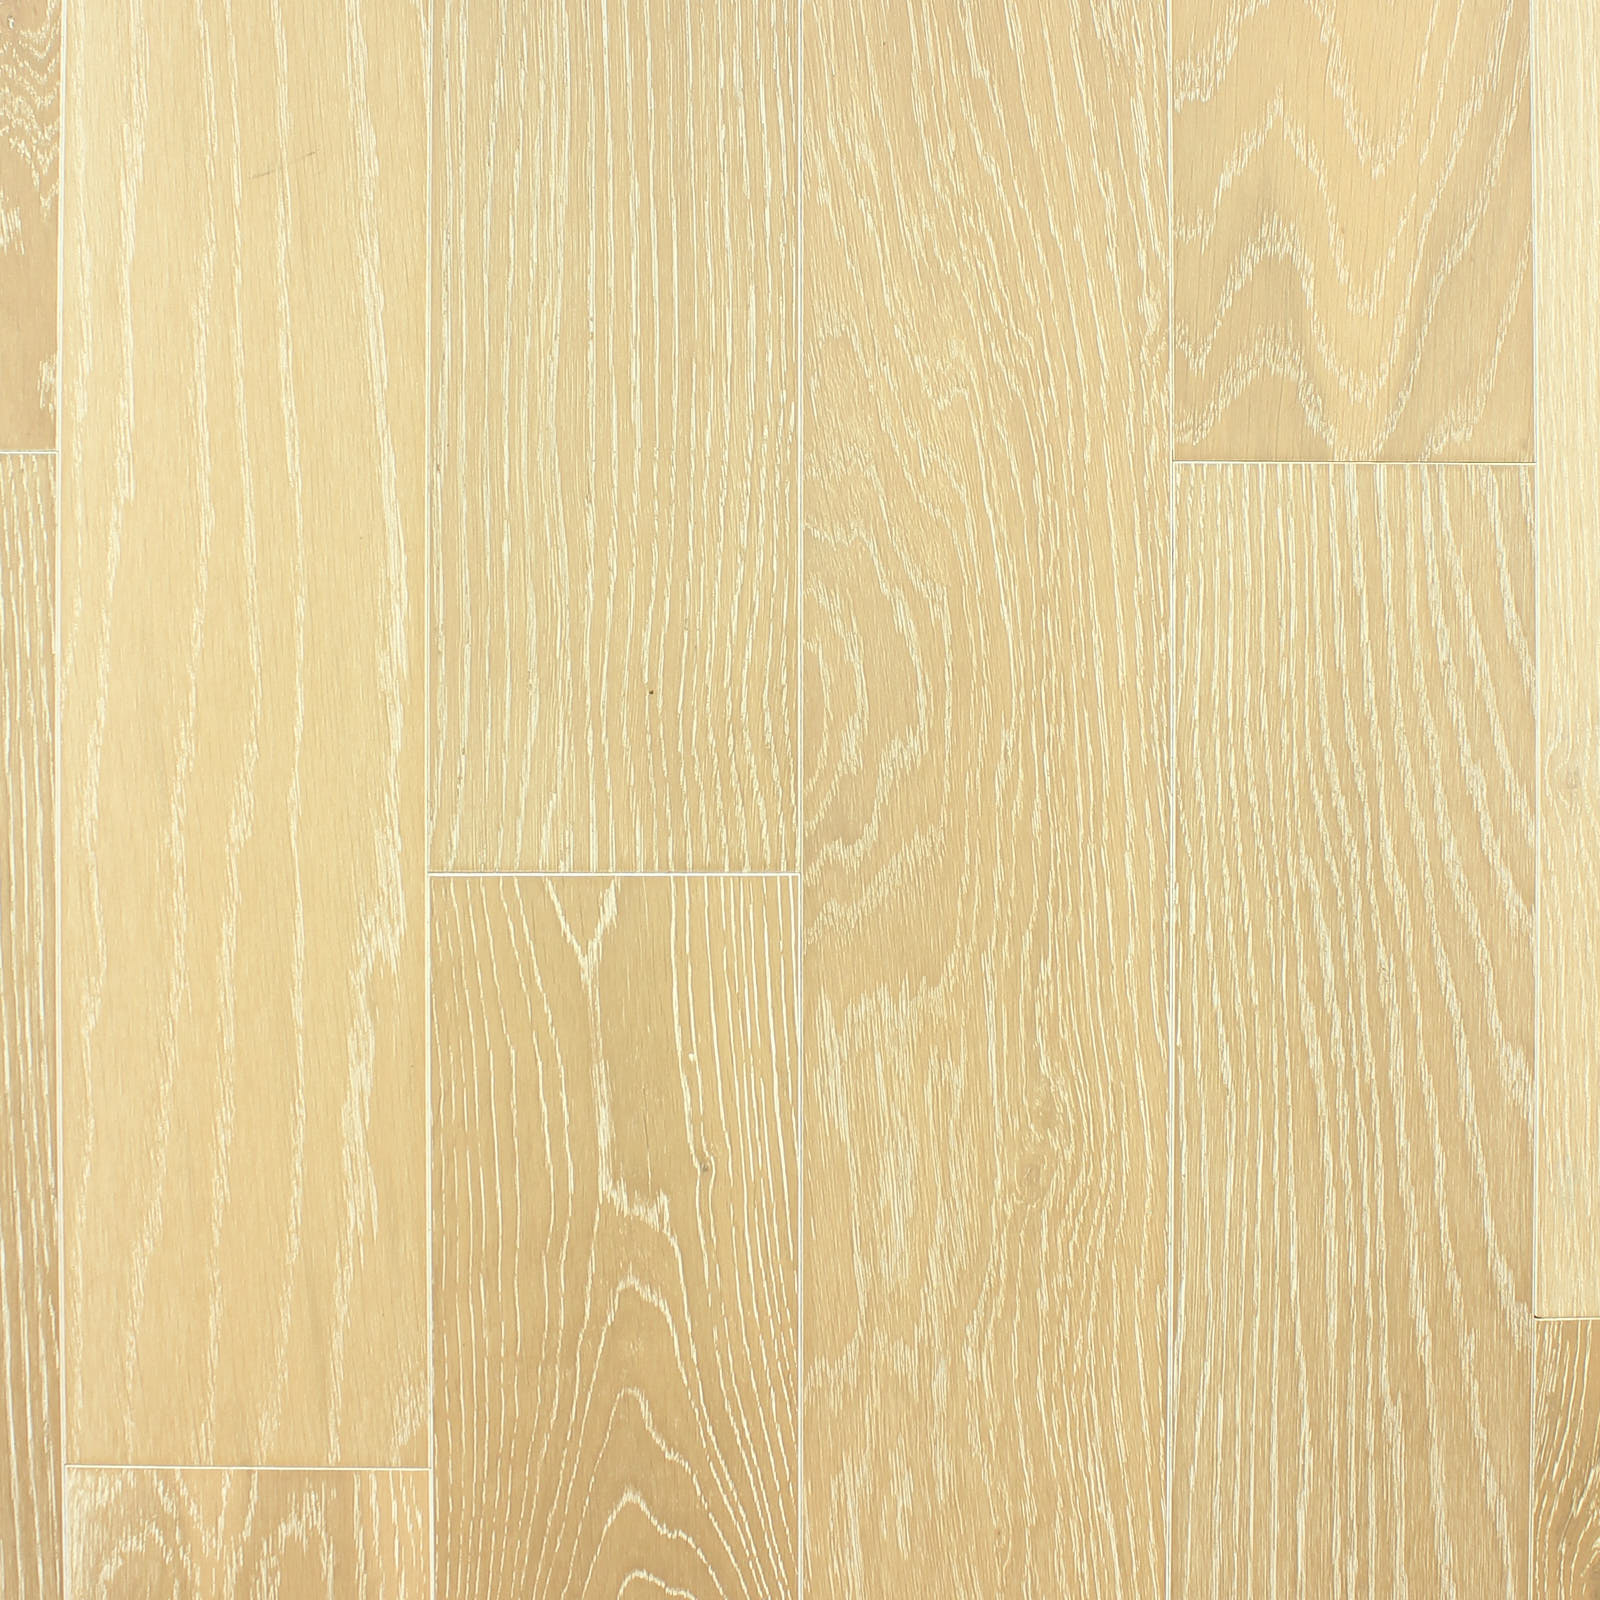 Dorado Driftwood Engineered Hardwood Flooring